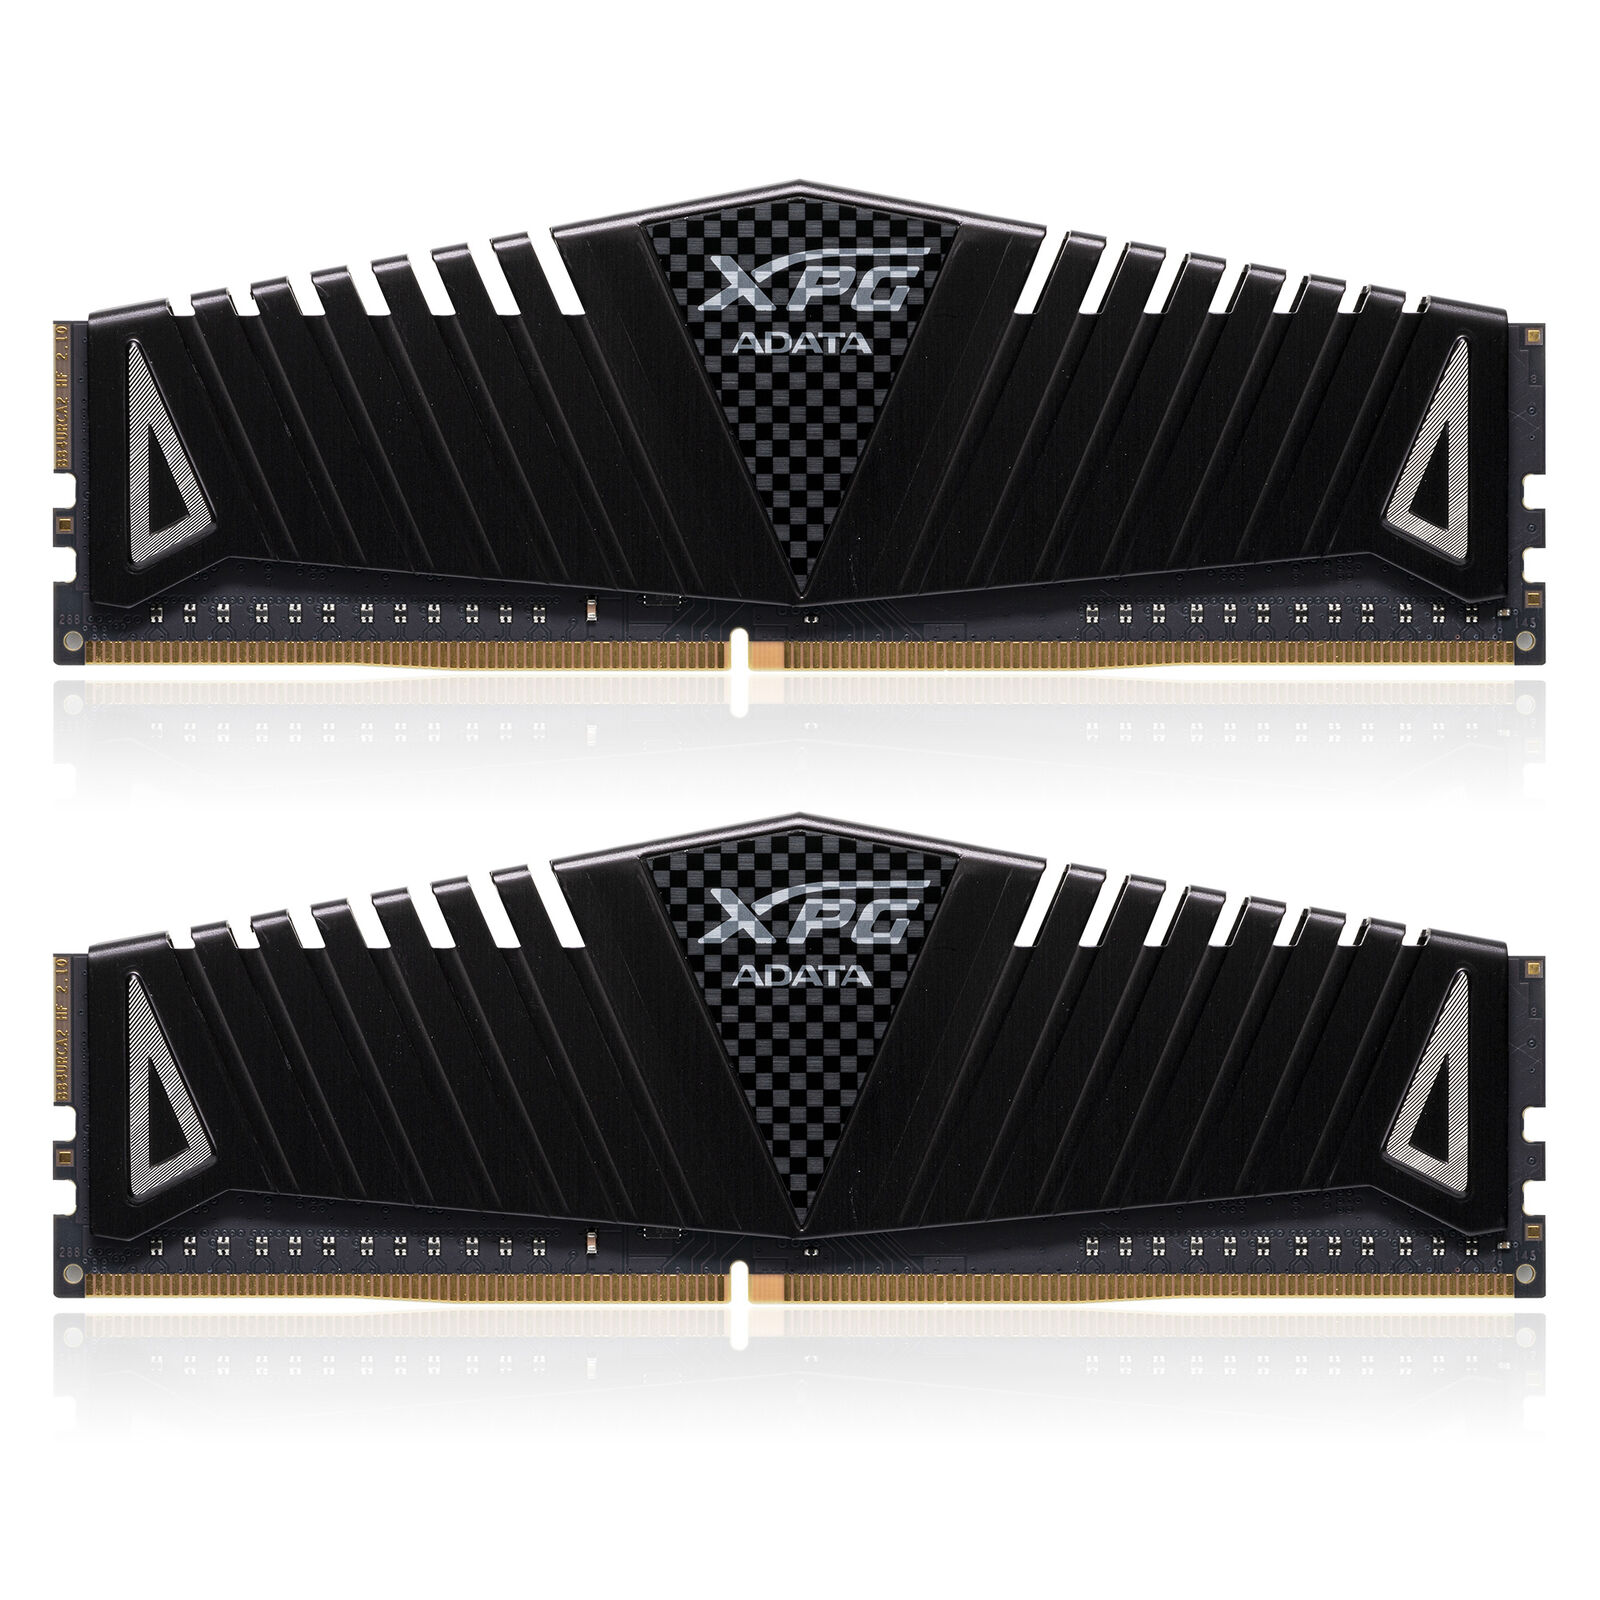 XPG Z1 Desktop Memory: 16GB (2x8GB) DDR4 3200MHz CL16 Black. Buy it now for 84.99